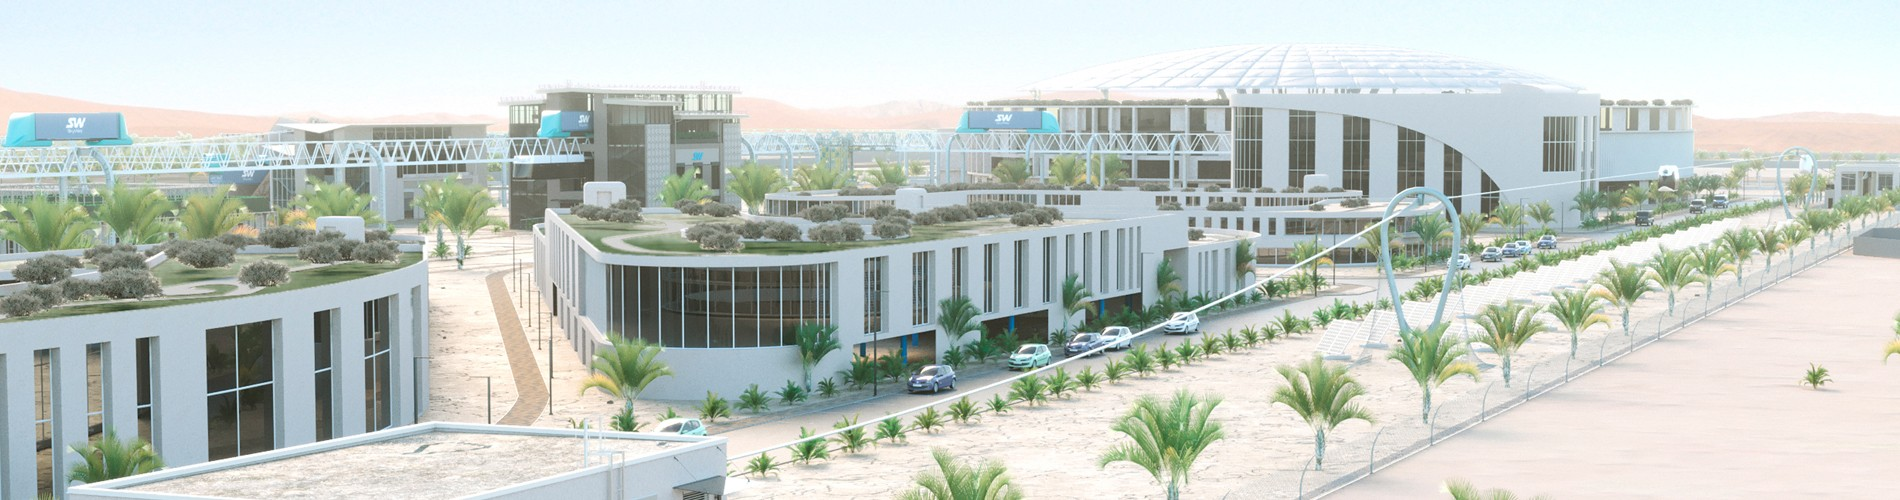 The Beginning of the Second Phase of the SkyWay Innovation Center Construction in the UAE